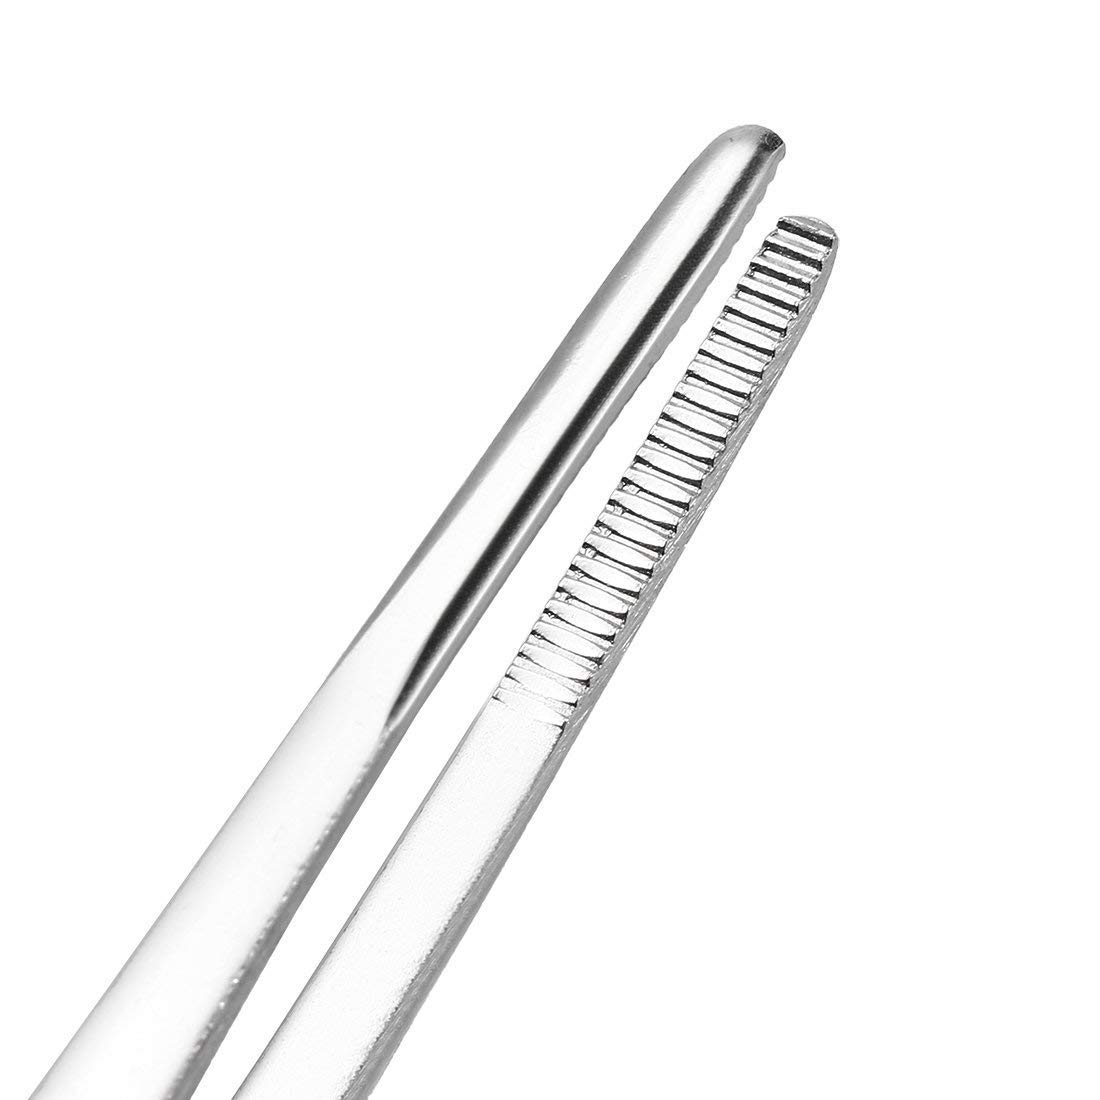 sourcingmap 2 Pcs 5-Inch Stainless Steel Tweezers with Curved Pointed Serrated Tip